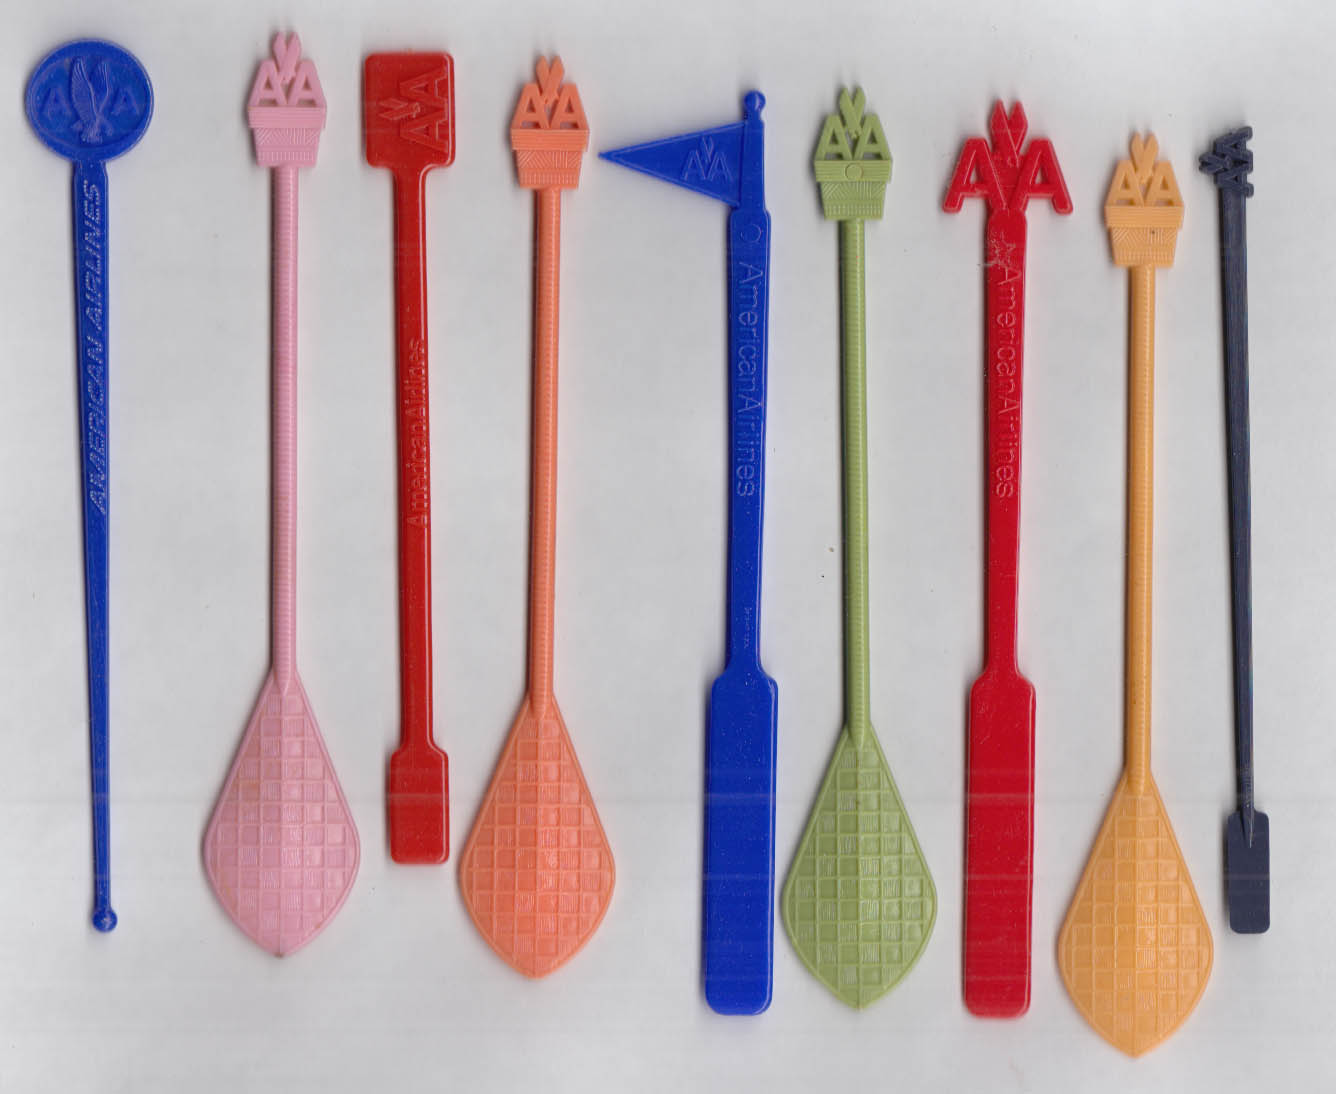 9 different American Airlines airline swizzle sticks